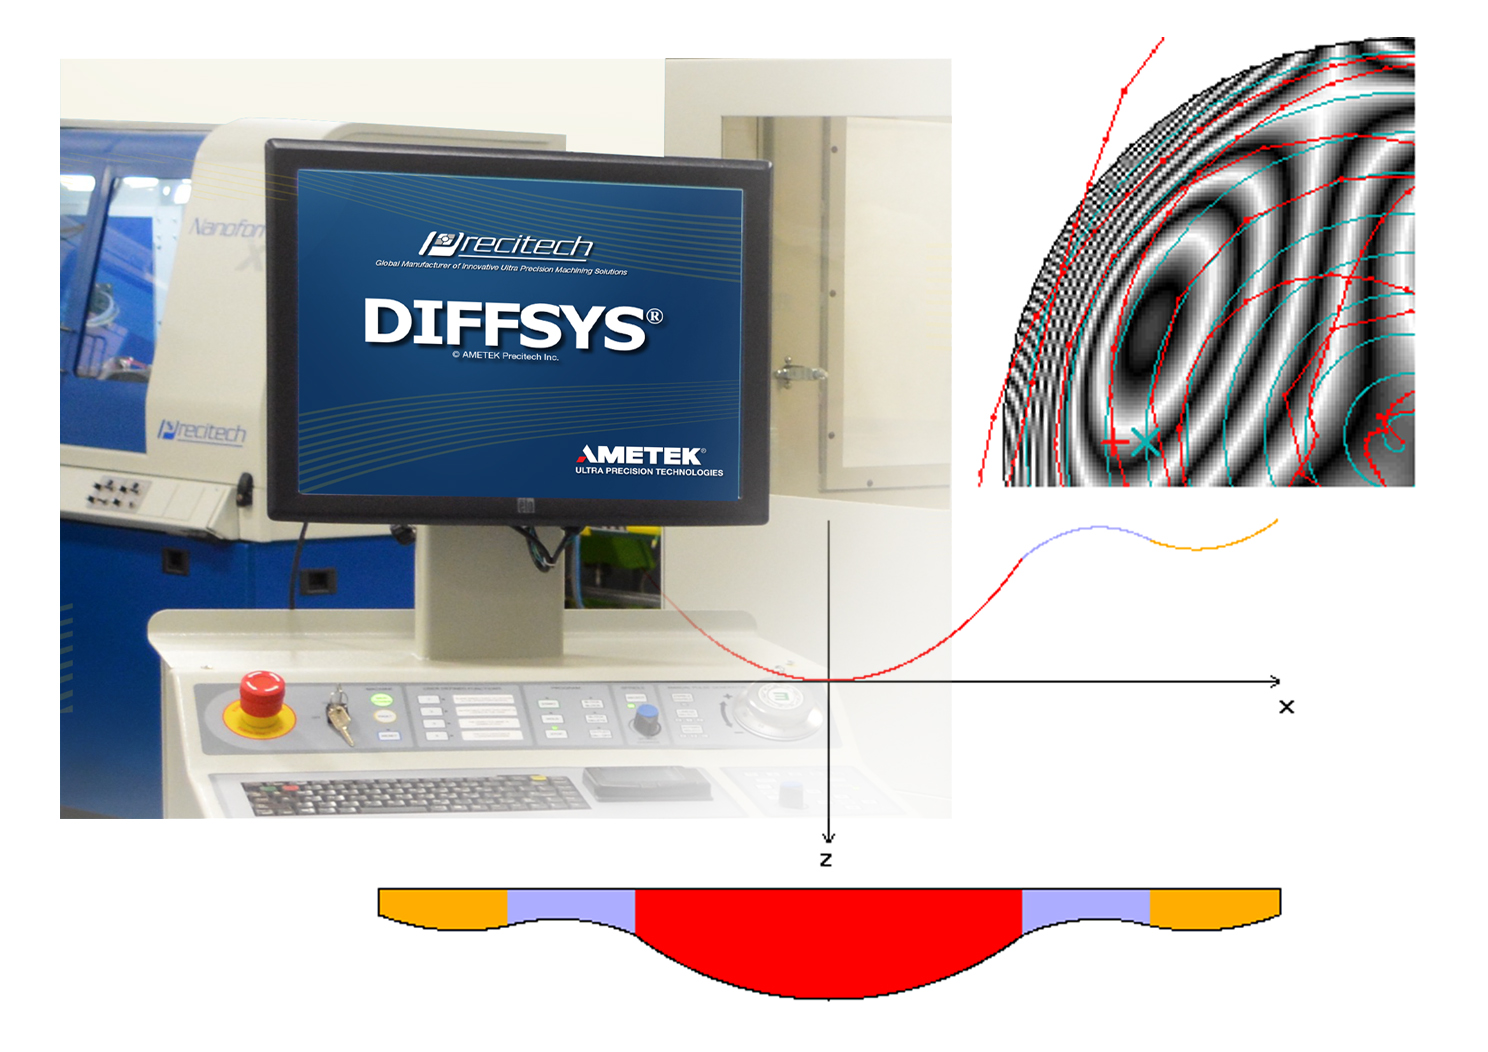 DIFFSYS CAM Software for generation of optical surfaces on precision CNC machines